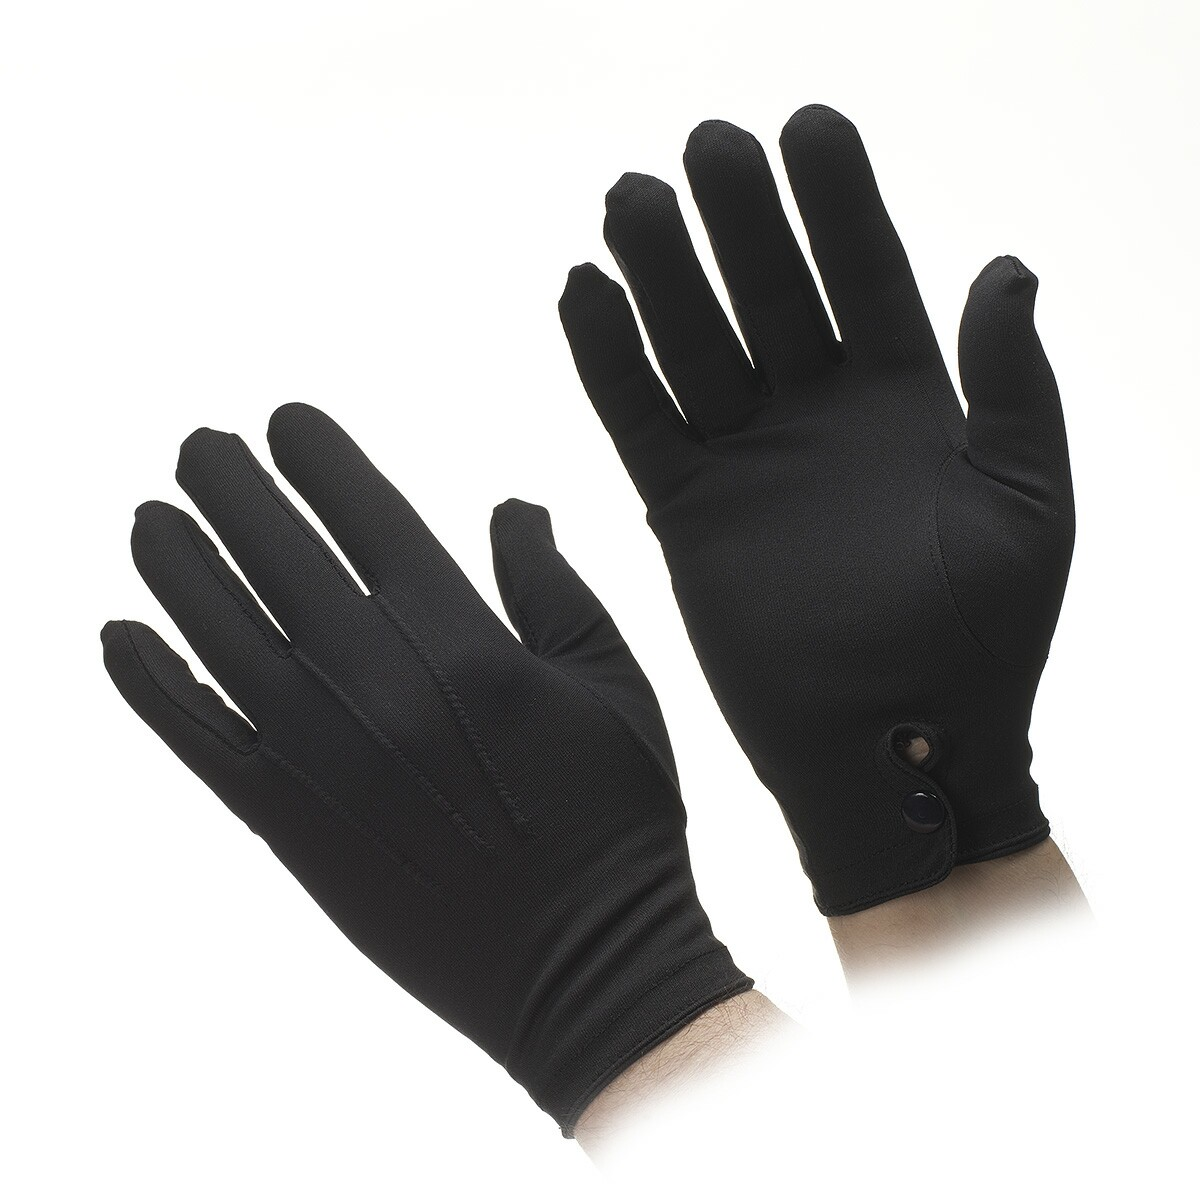 Free shipping BOTH ways on Gloves, Gray, Men, from our vast selection of styles. Fast delivery, and 24/7/ real-person service with a smile. Click or call